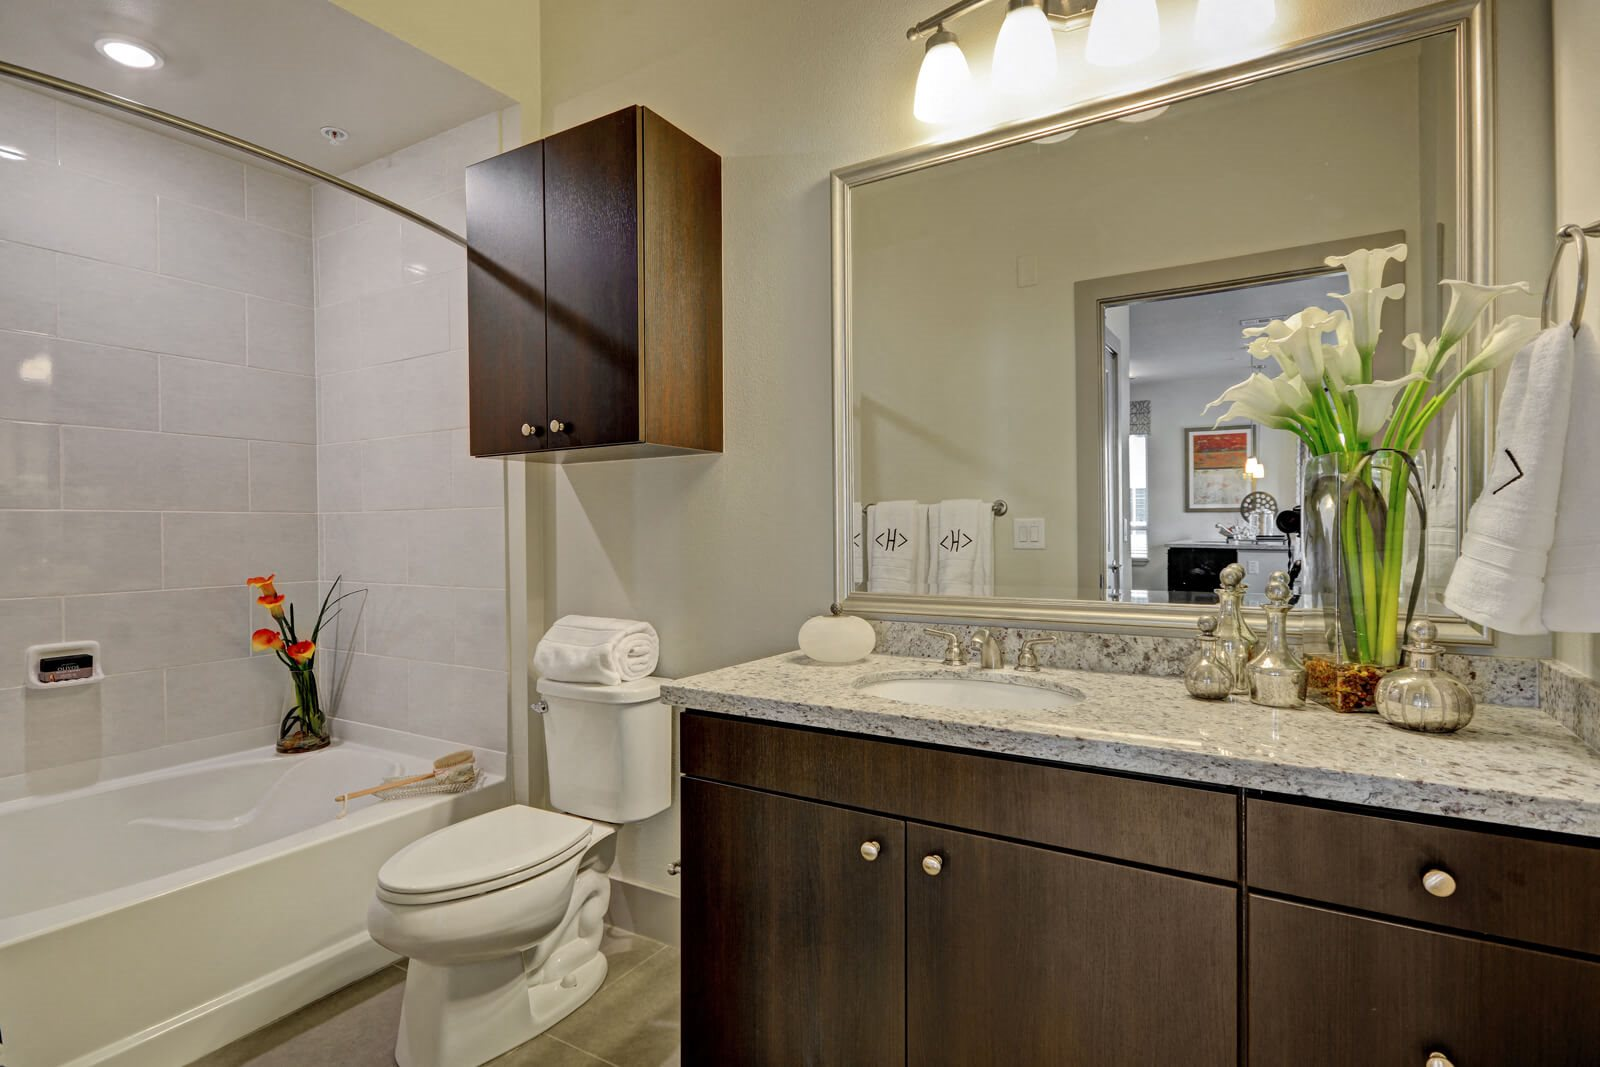 Large, Spa-Inspired Bathrooms at South Park by Windsor, Los Angeles, California